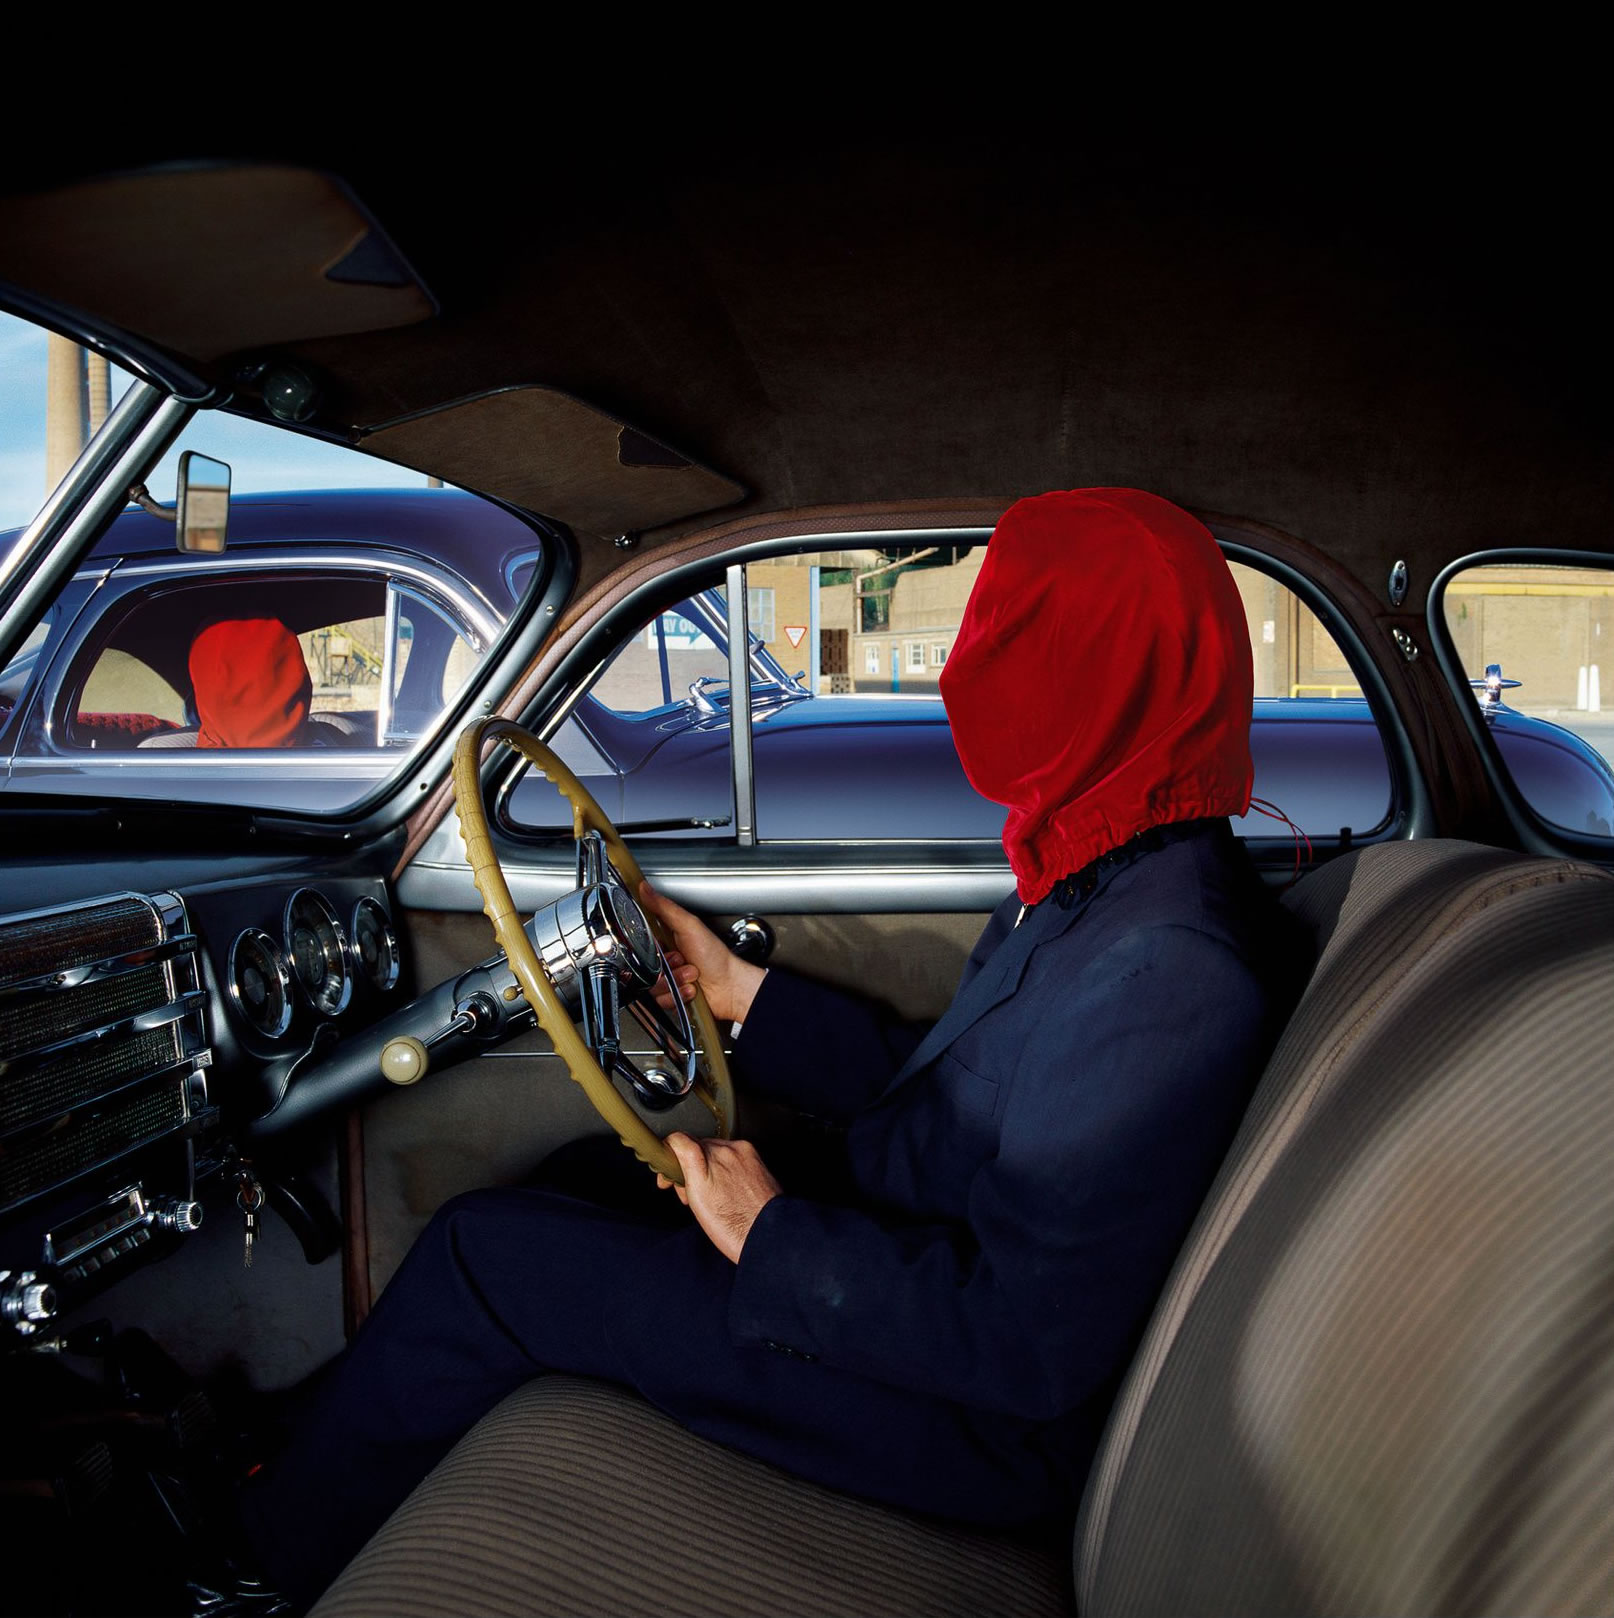 The Mars Volta - Frances the Mute cover image